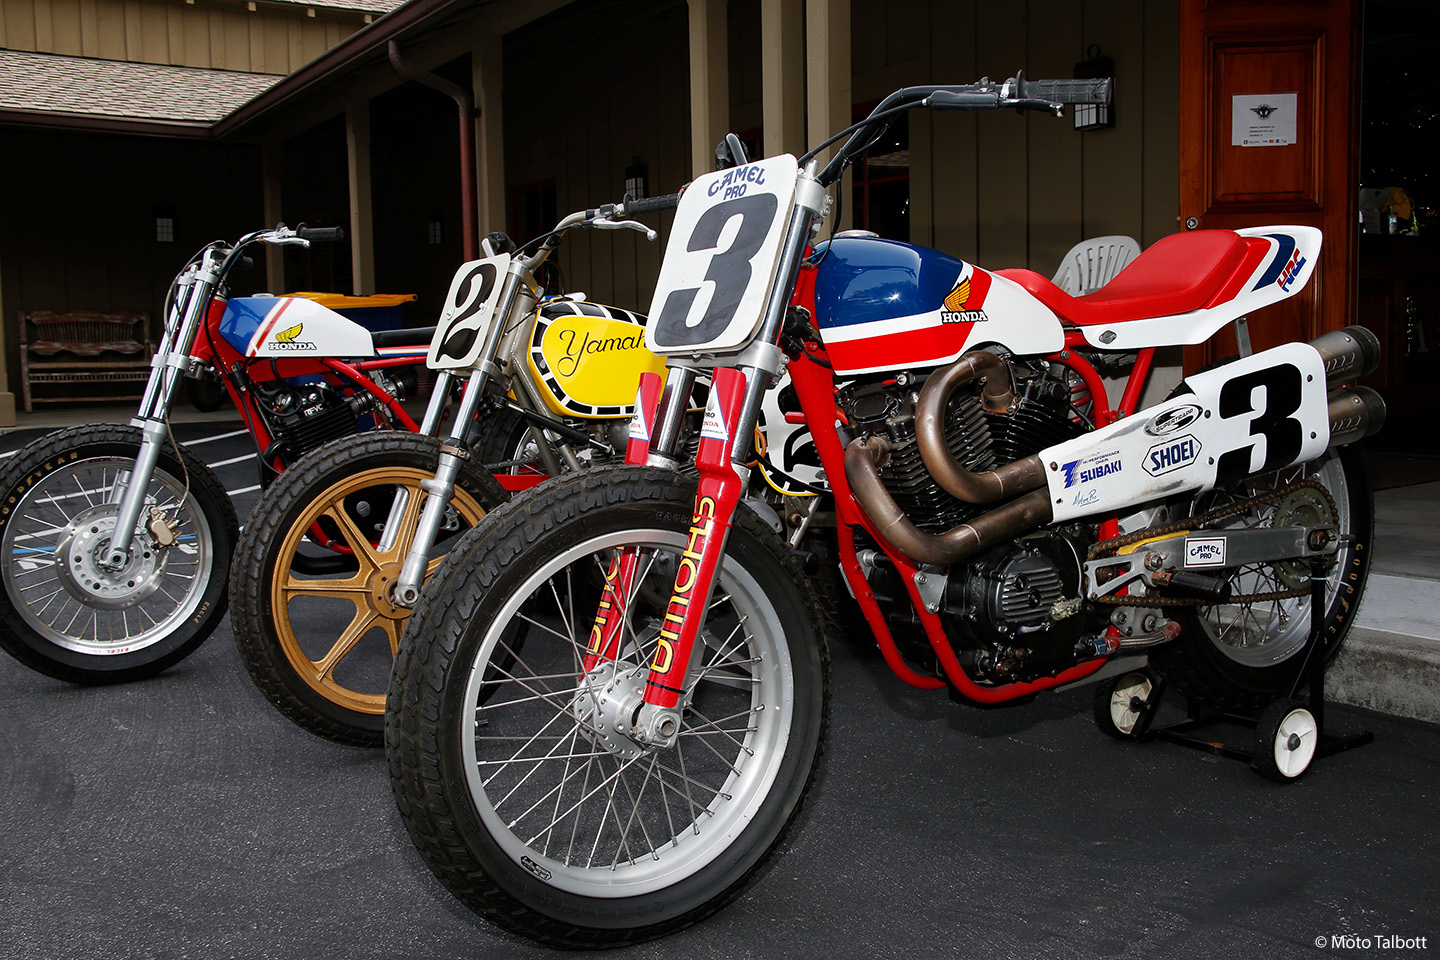 From left to right: rare Honda RS 600 flat tracker owned and restored by Anthony Giammanco; Yamaha dirt track bike belonging to Grand National Champion Kenny Roberts; Honda RS 750 twin factory racer.